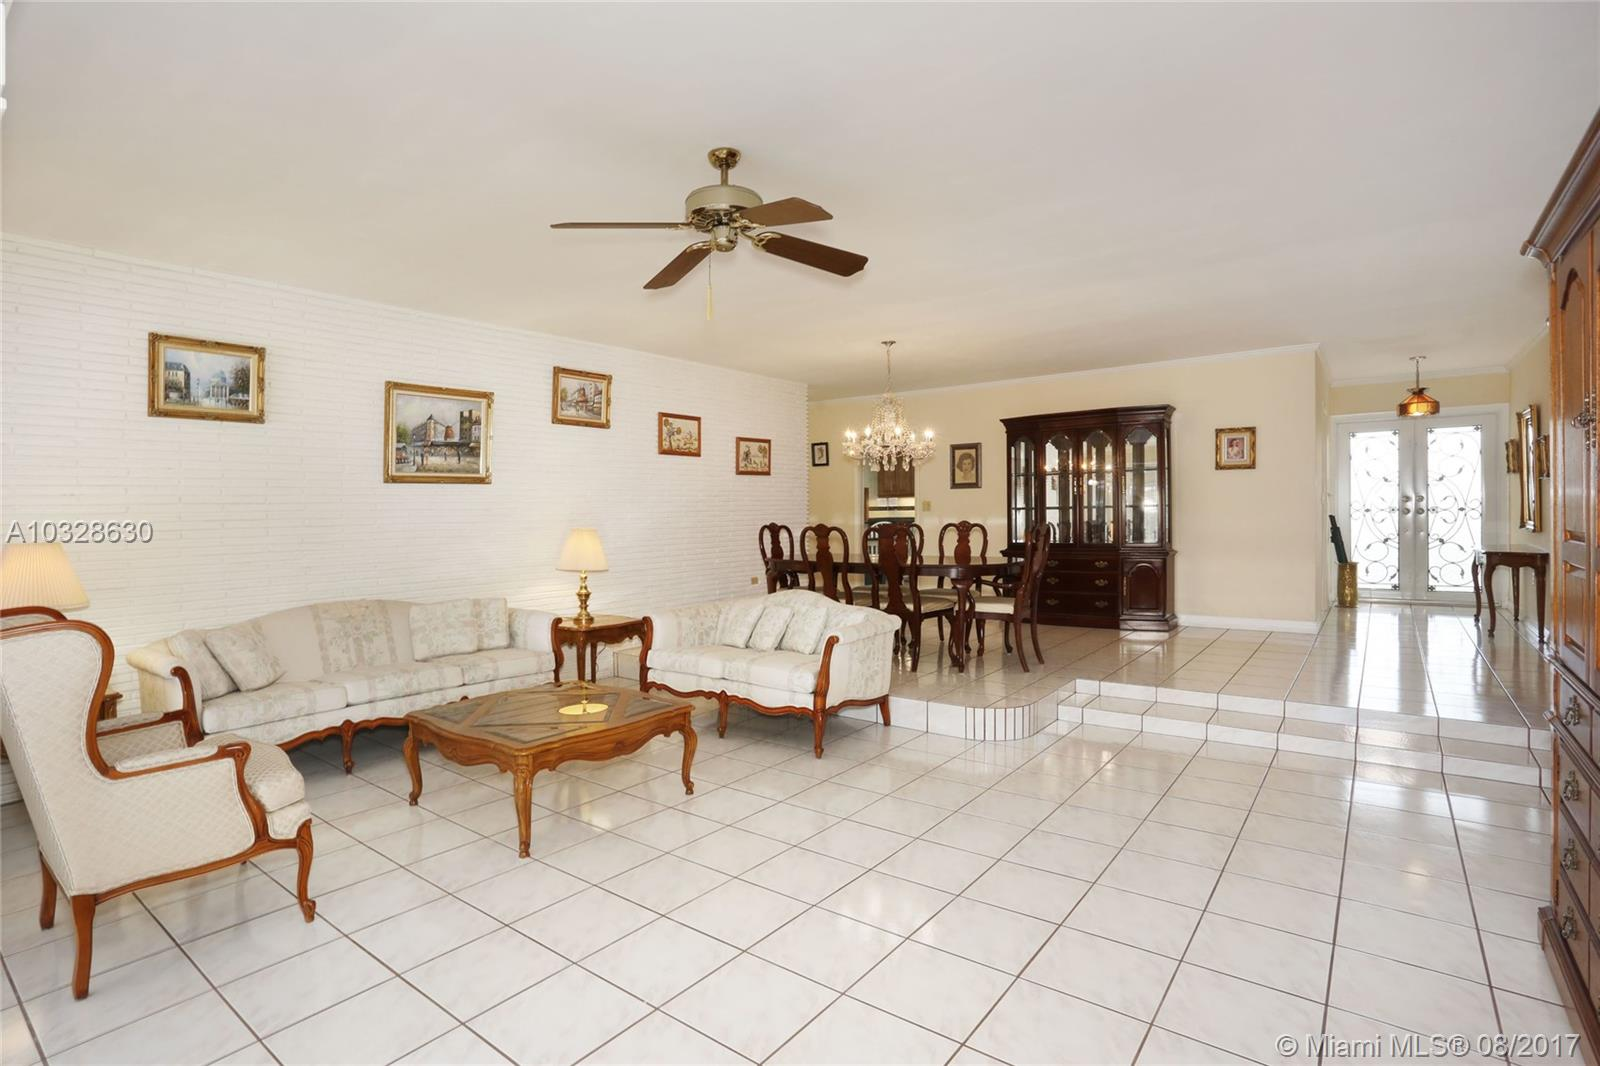 5810 SW 64th Ave, South Miami, FL 33143